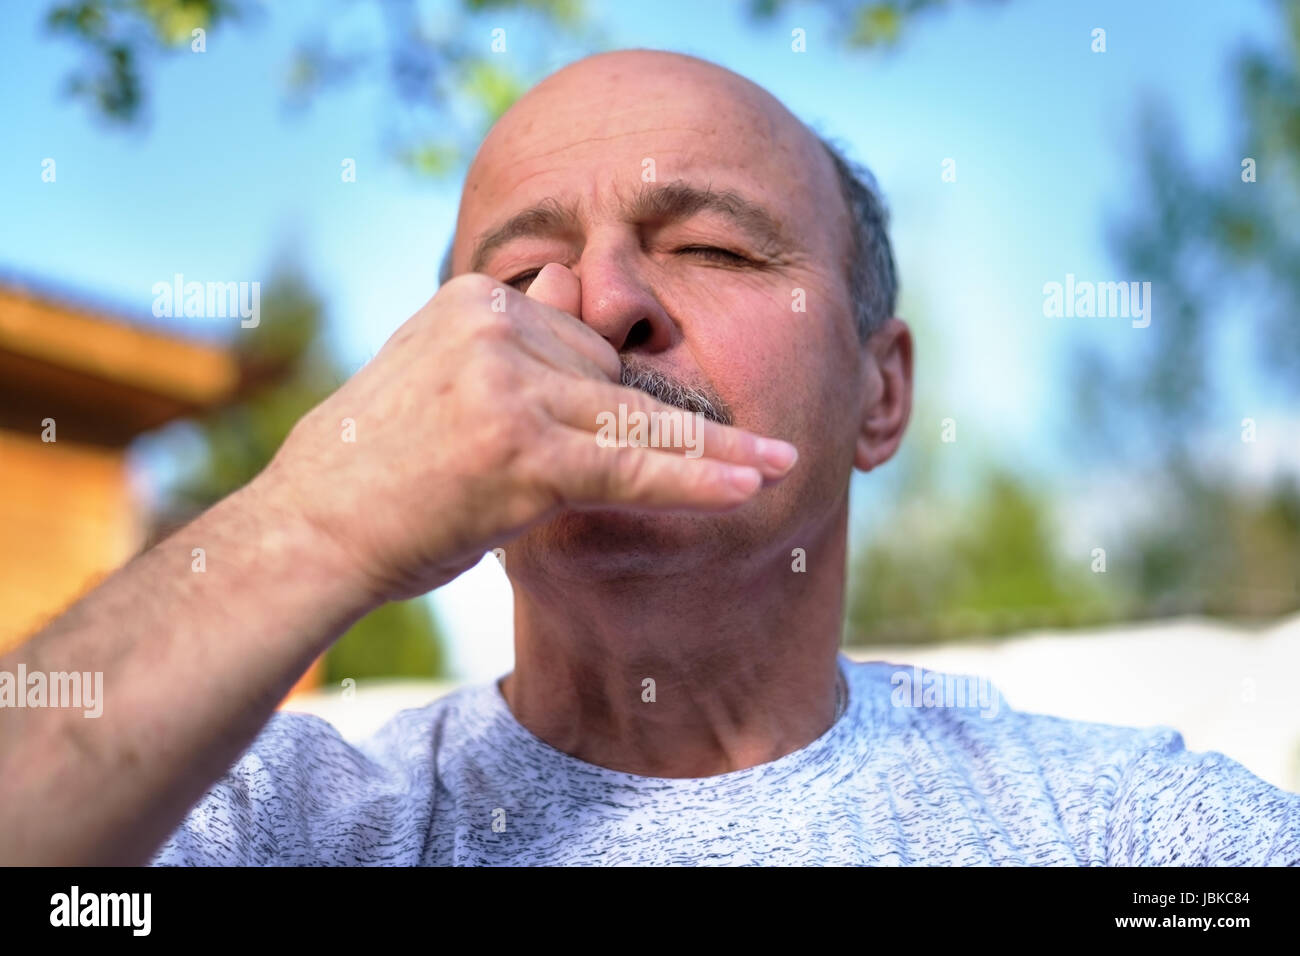 Handsome mature man with mustache breathing yoga pranayama on summer sunny day outside. - Stock Image